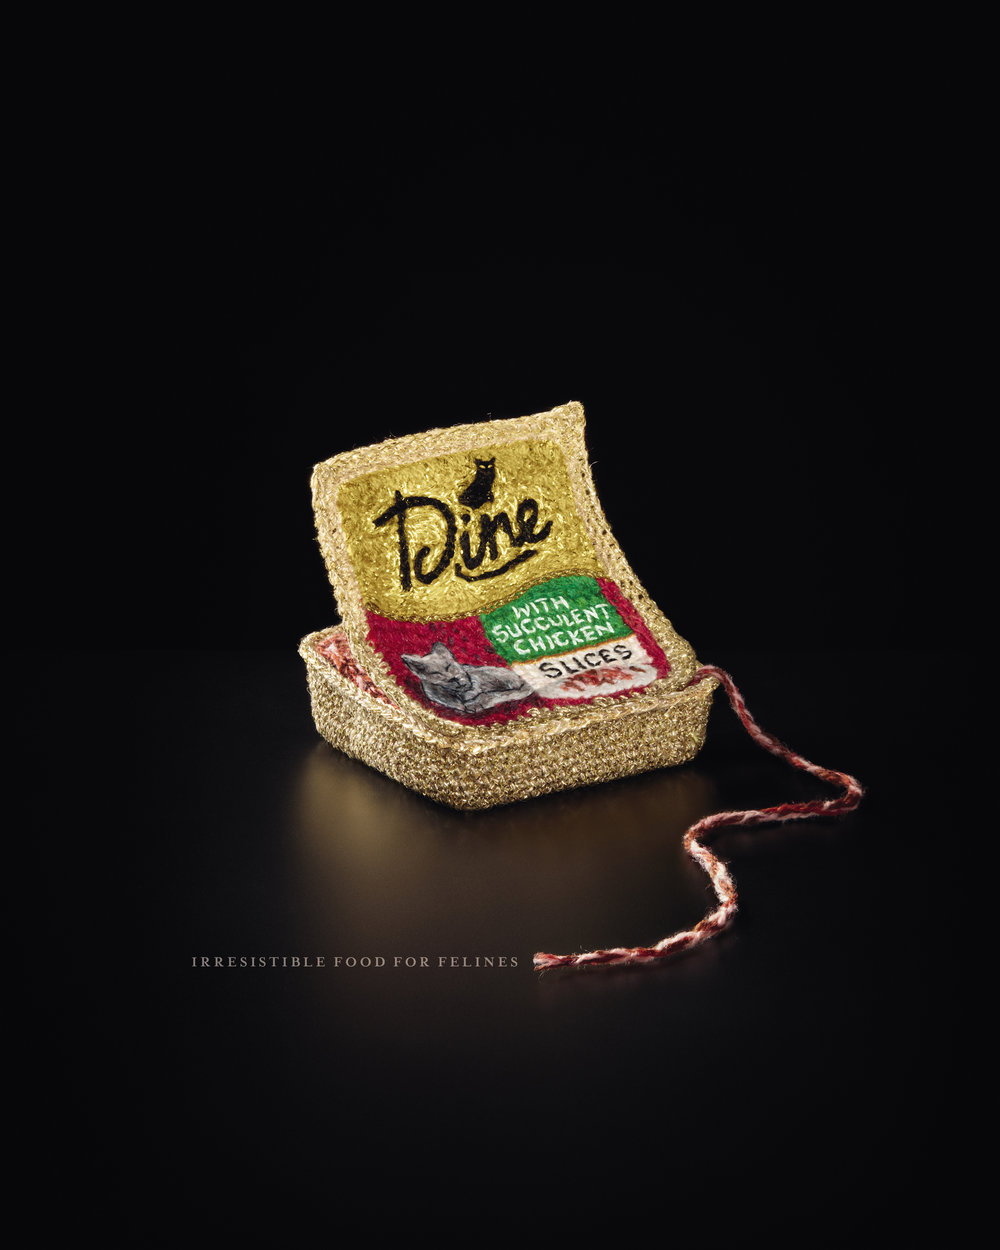 Dine_Irresistible+Packshots_The+Yarn+Tin_rgb.jpg